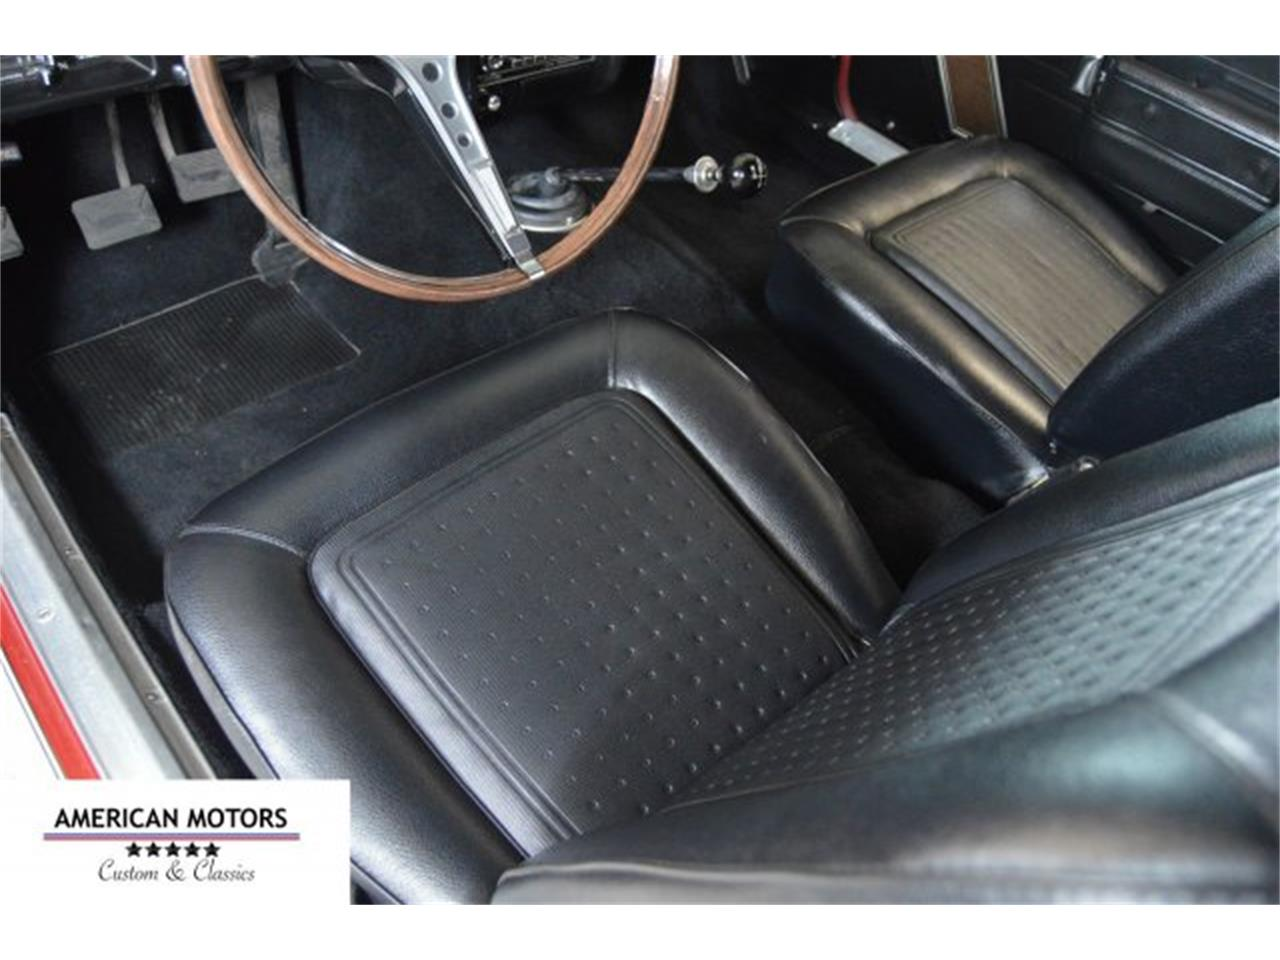 Large Picture of 1968 AMC AMX located in California - $45,000.00 Offered by American Motors Customs and Classics - JTT8